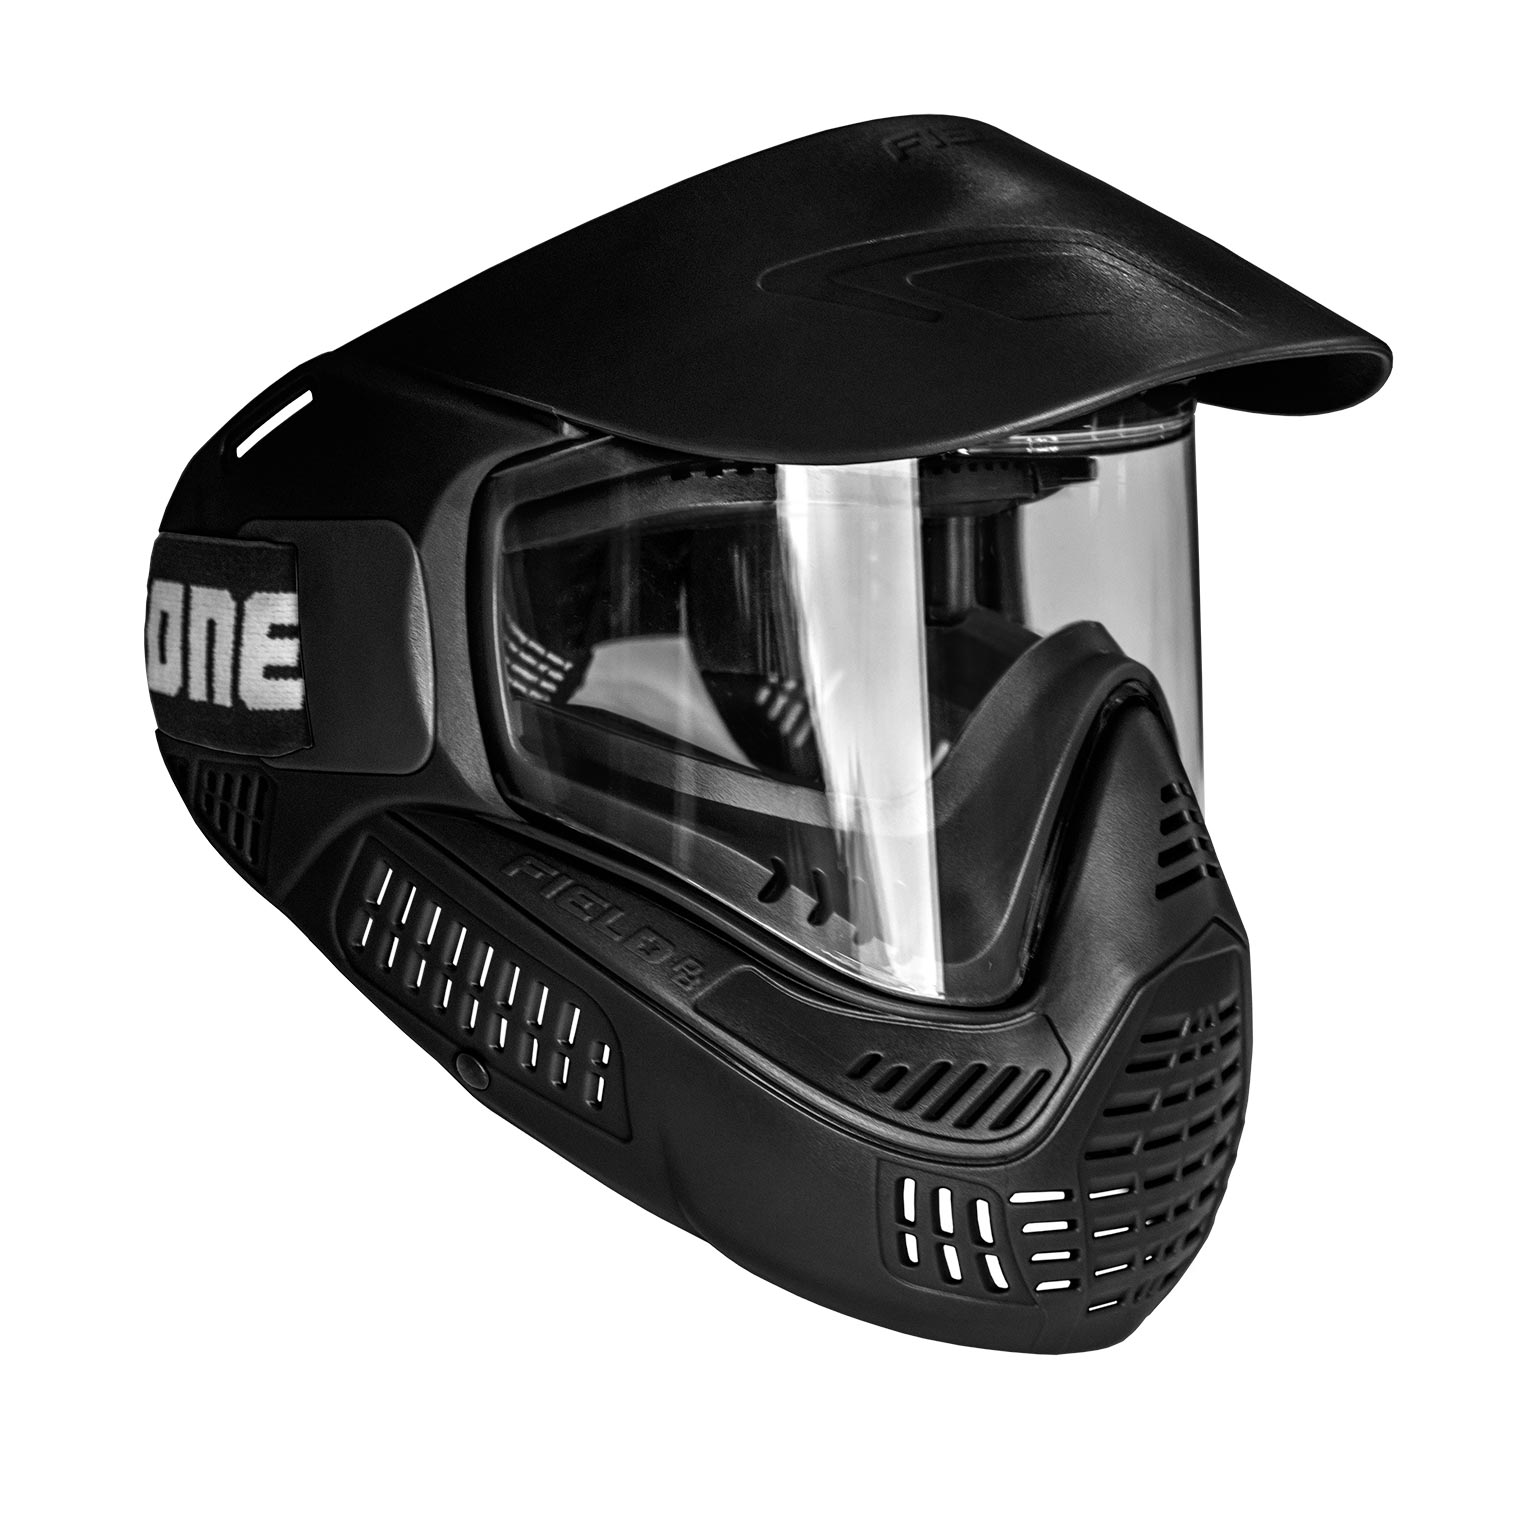 Goggle #ONE Thermal Black - Rubber Foam